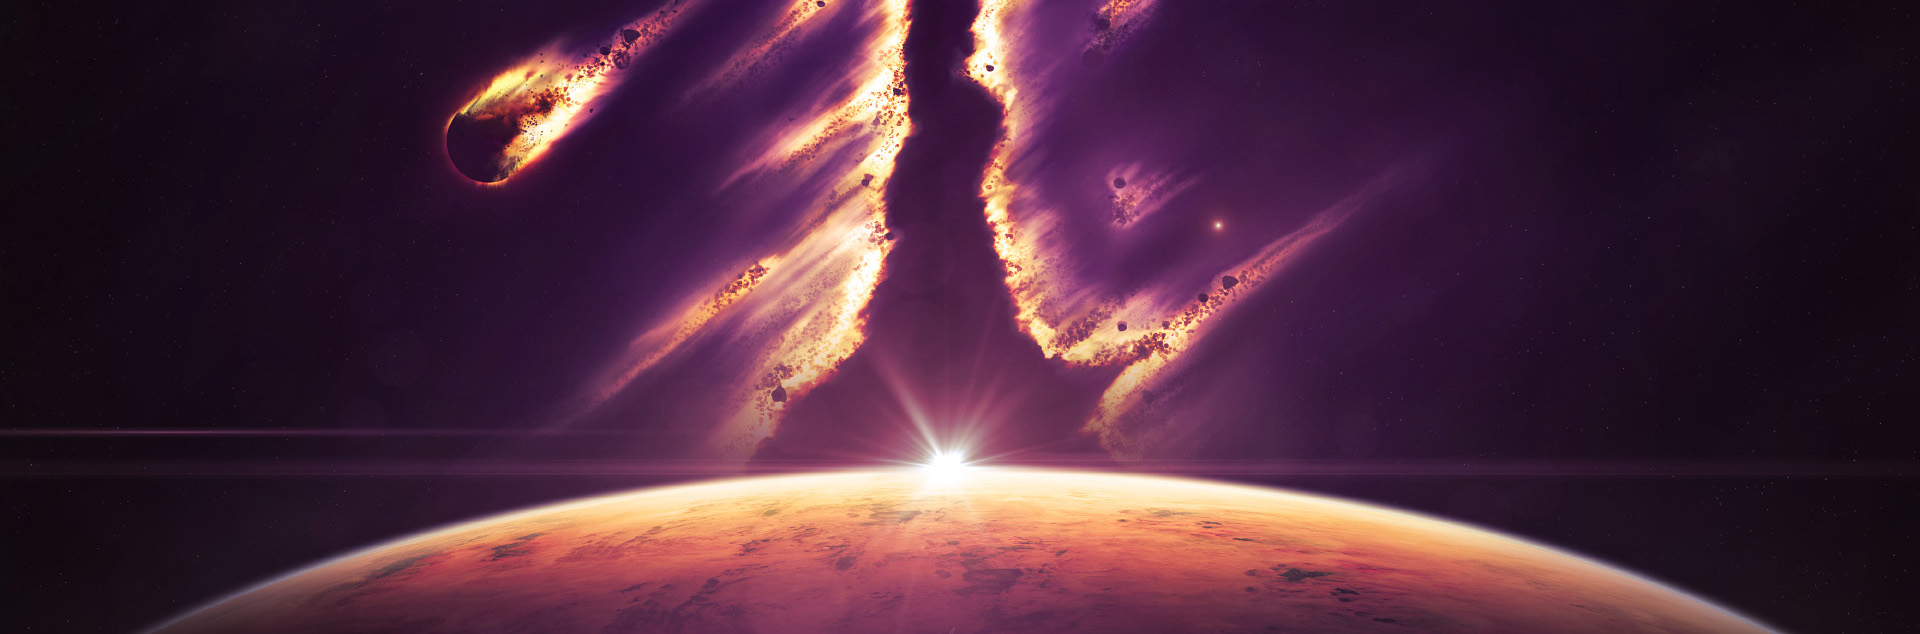 Domineering Cool Space Design Banner Background, Falling ...